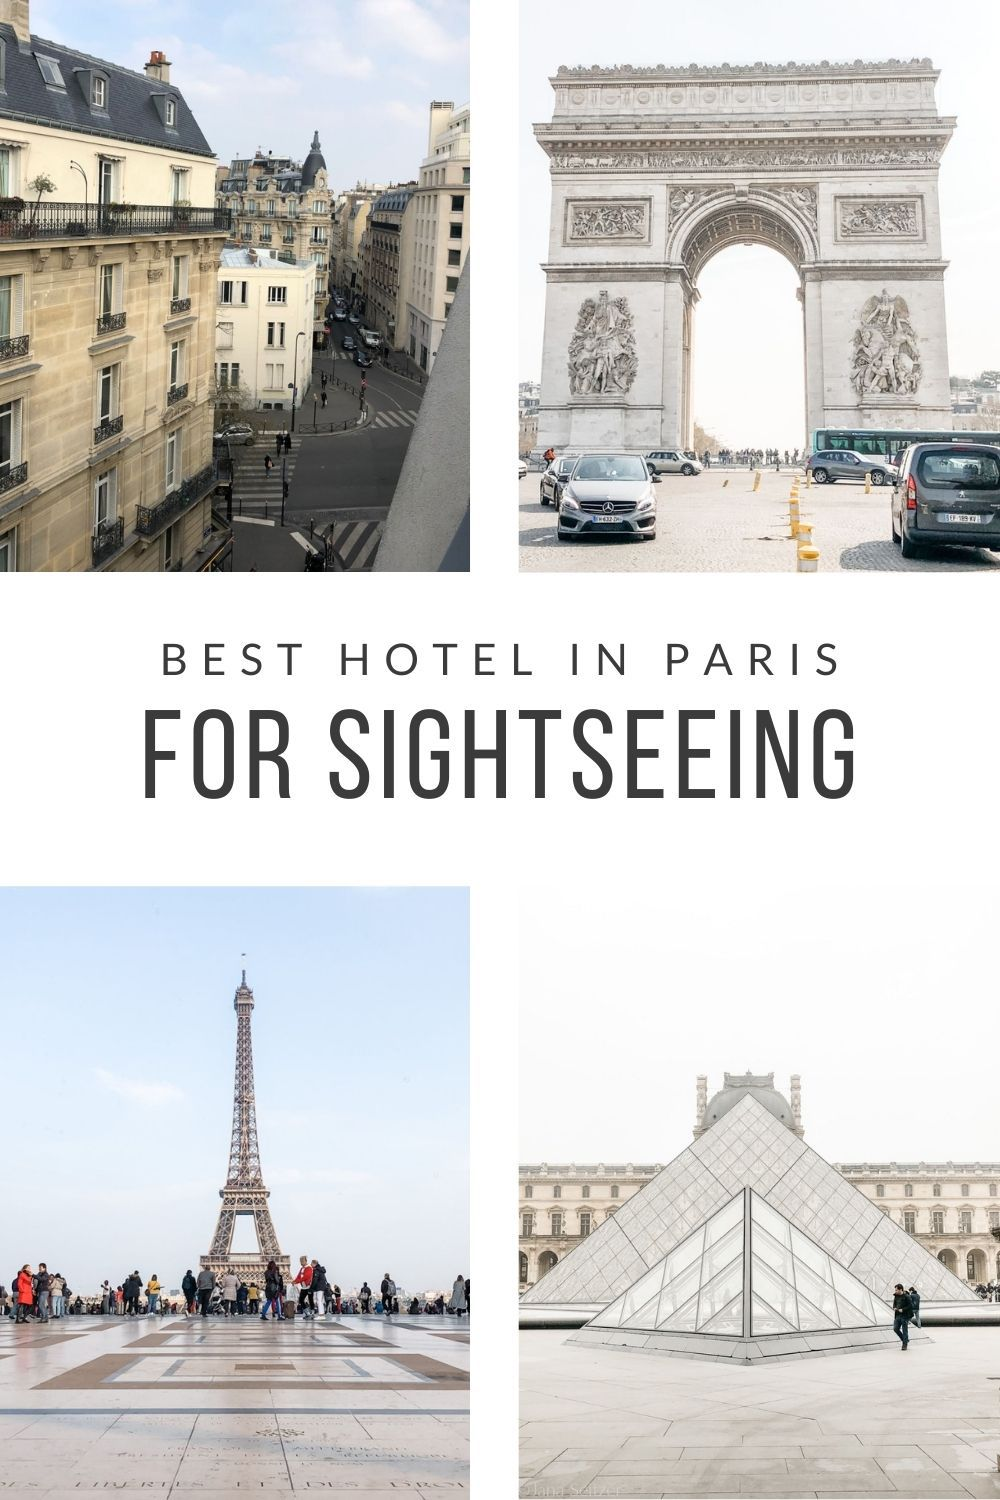 best hotel in paris for sightseeing